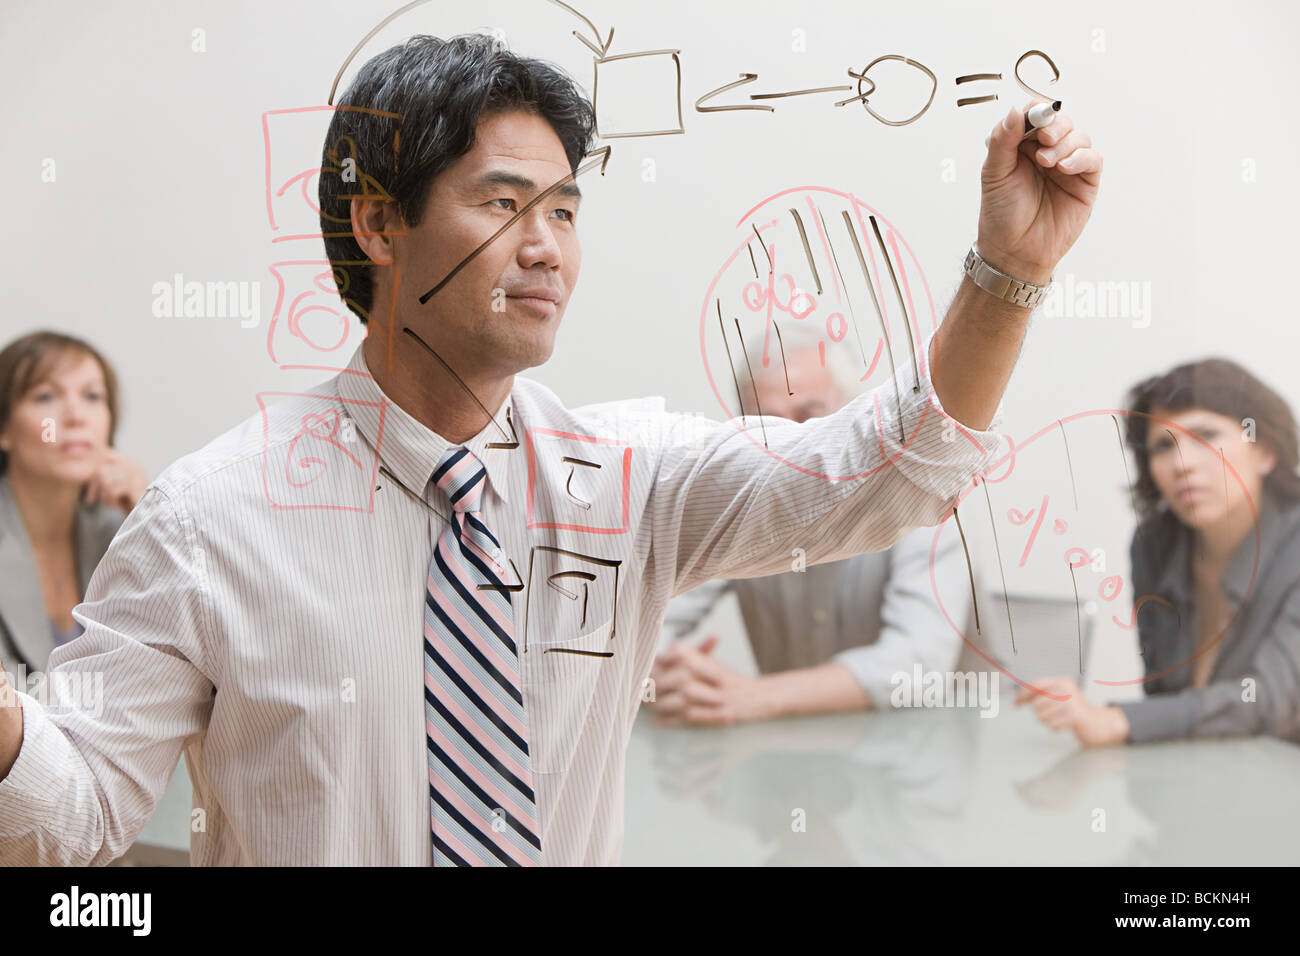 Man drawing diagram on glass - Stock Image